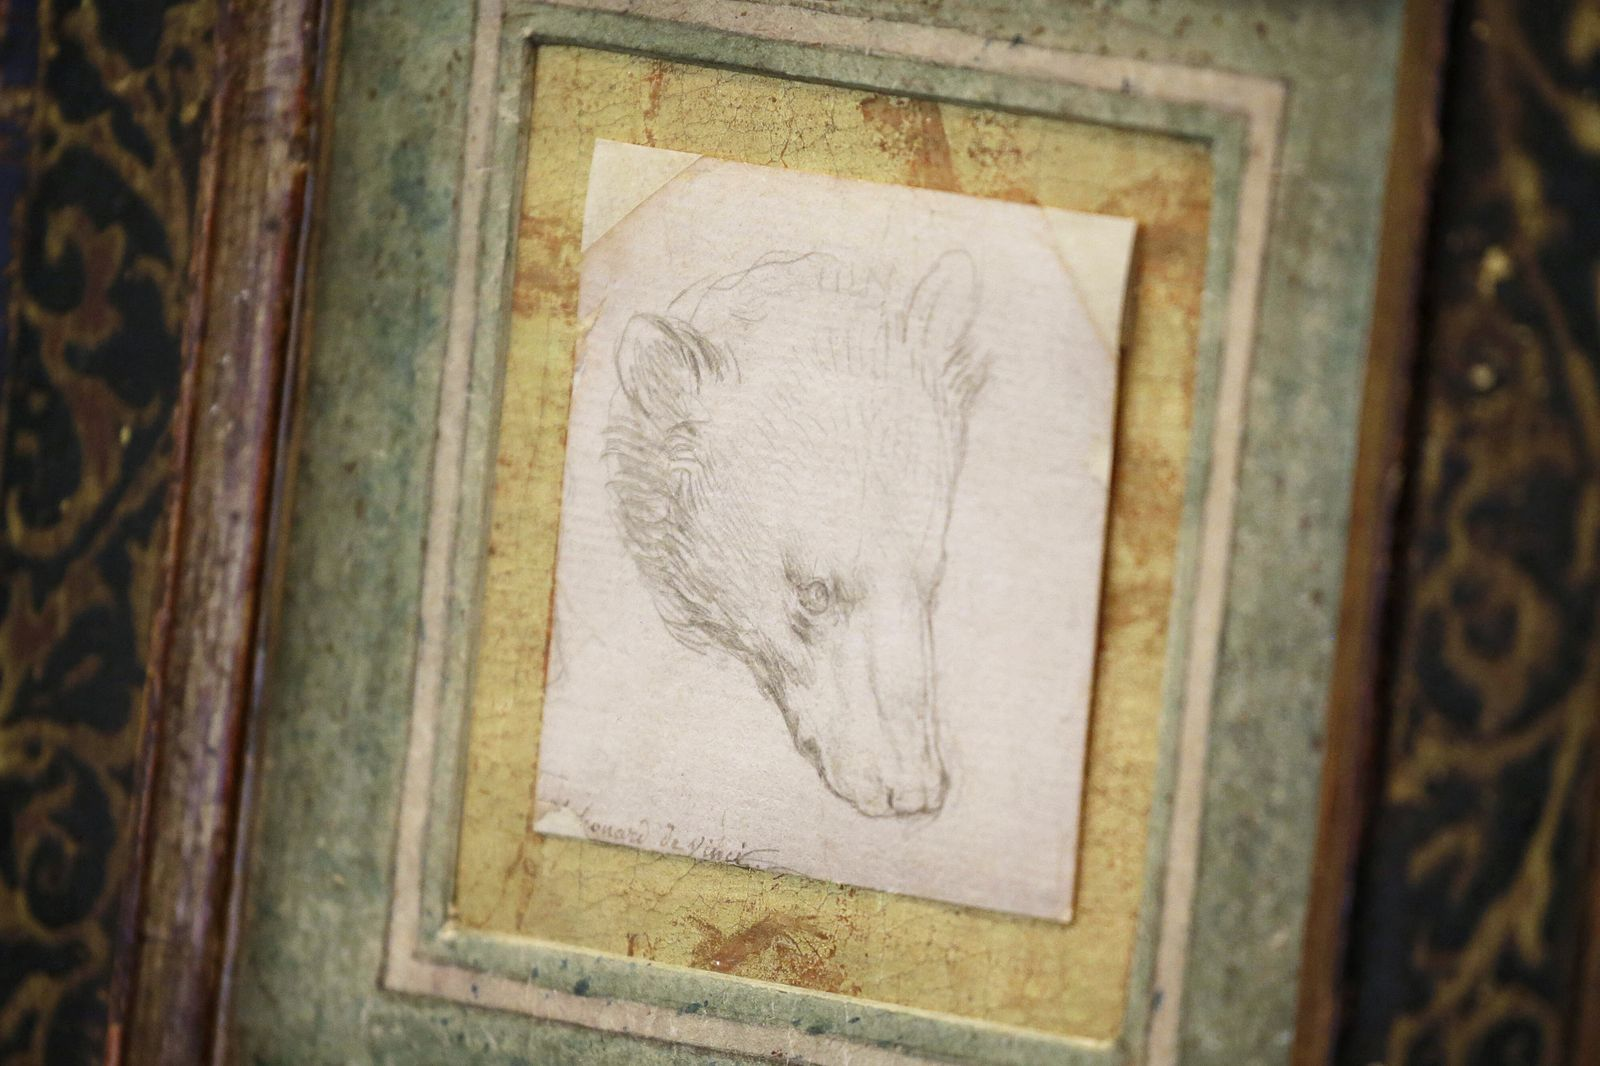 A drawing of the head of a bear by Leonardo da Vinci is on display as part of The Exceptional Sale at Christie s New Yor